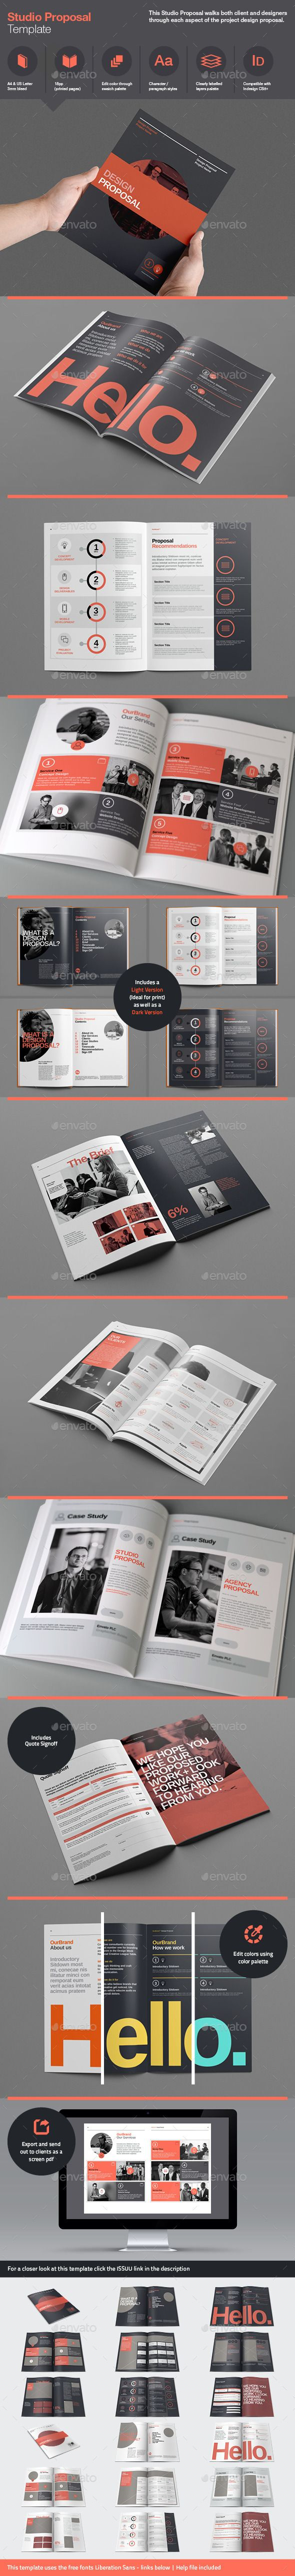 Studio Proposal Template, editorial design by RW Design Studio, via…